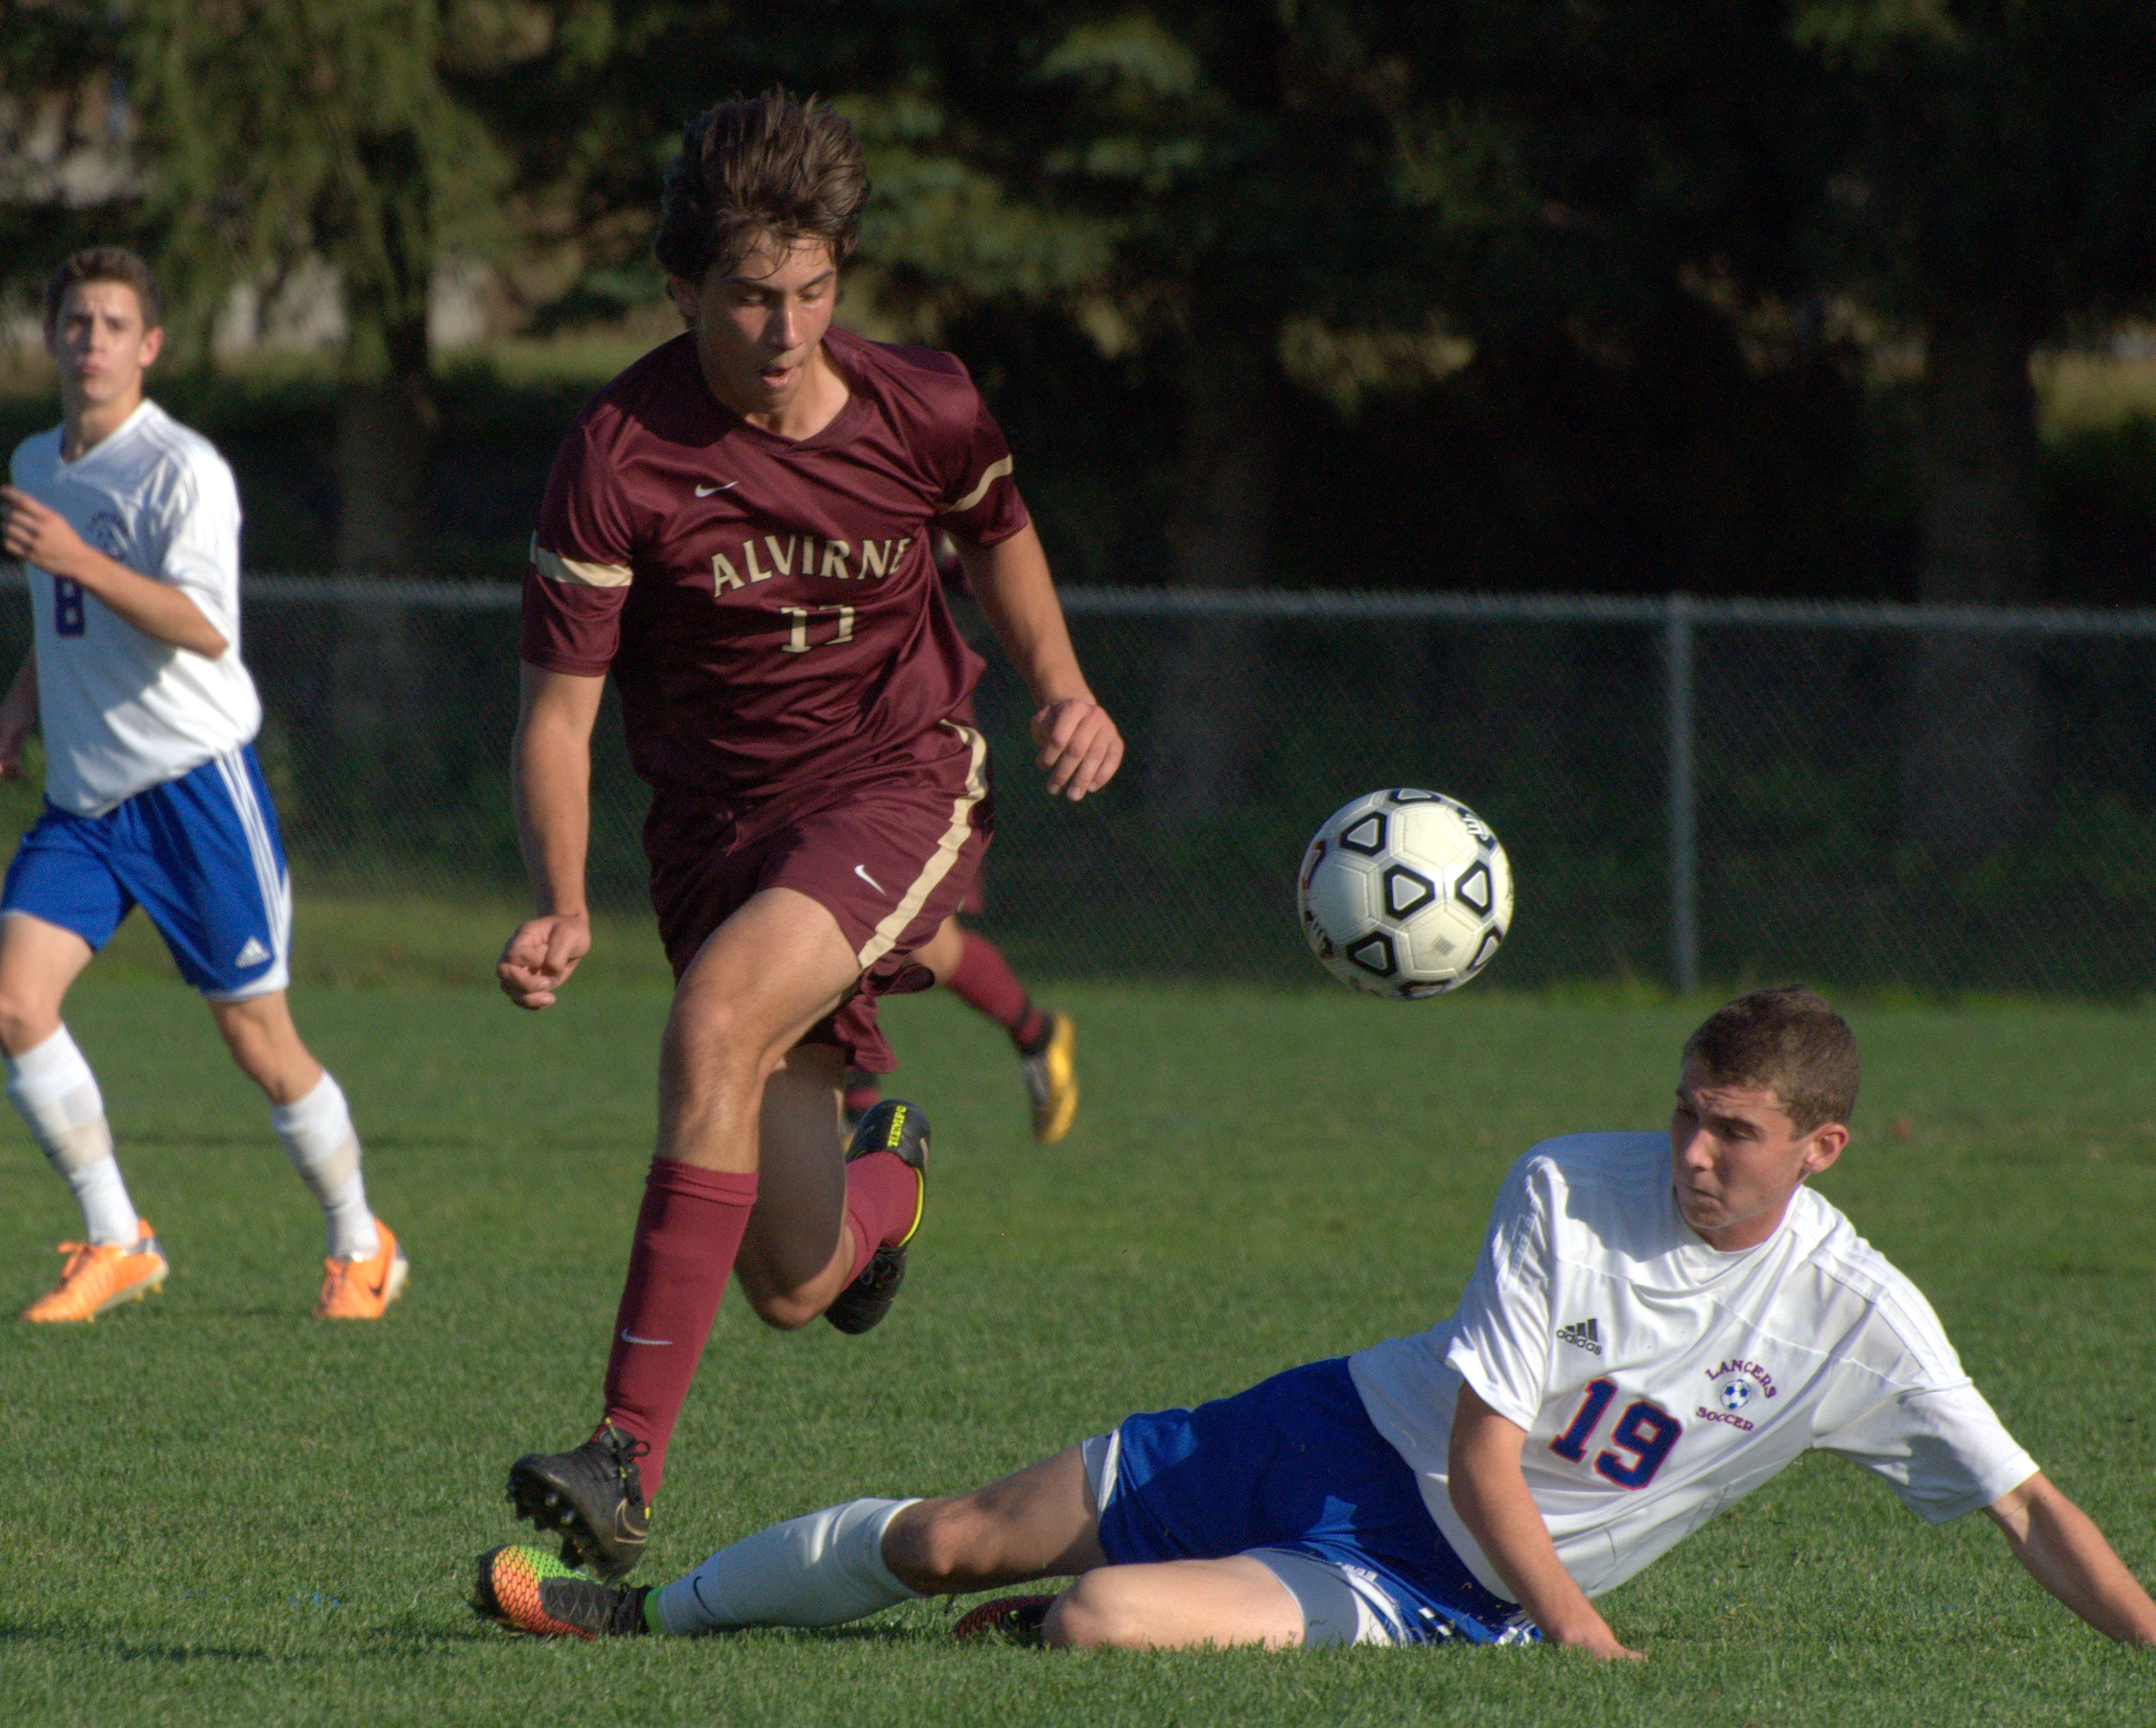 Londonderry's Max Hastings knocks the ball away from Alvirne's Raul Stedile during Monday's game.